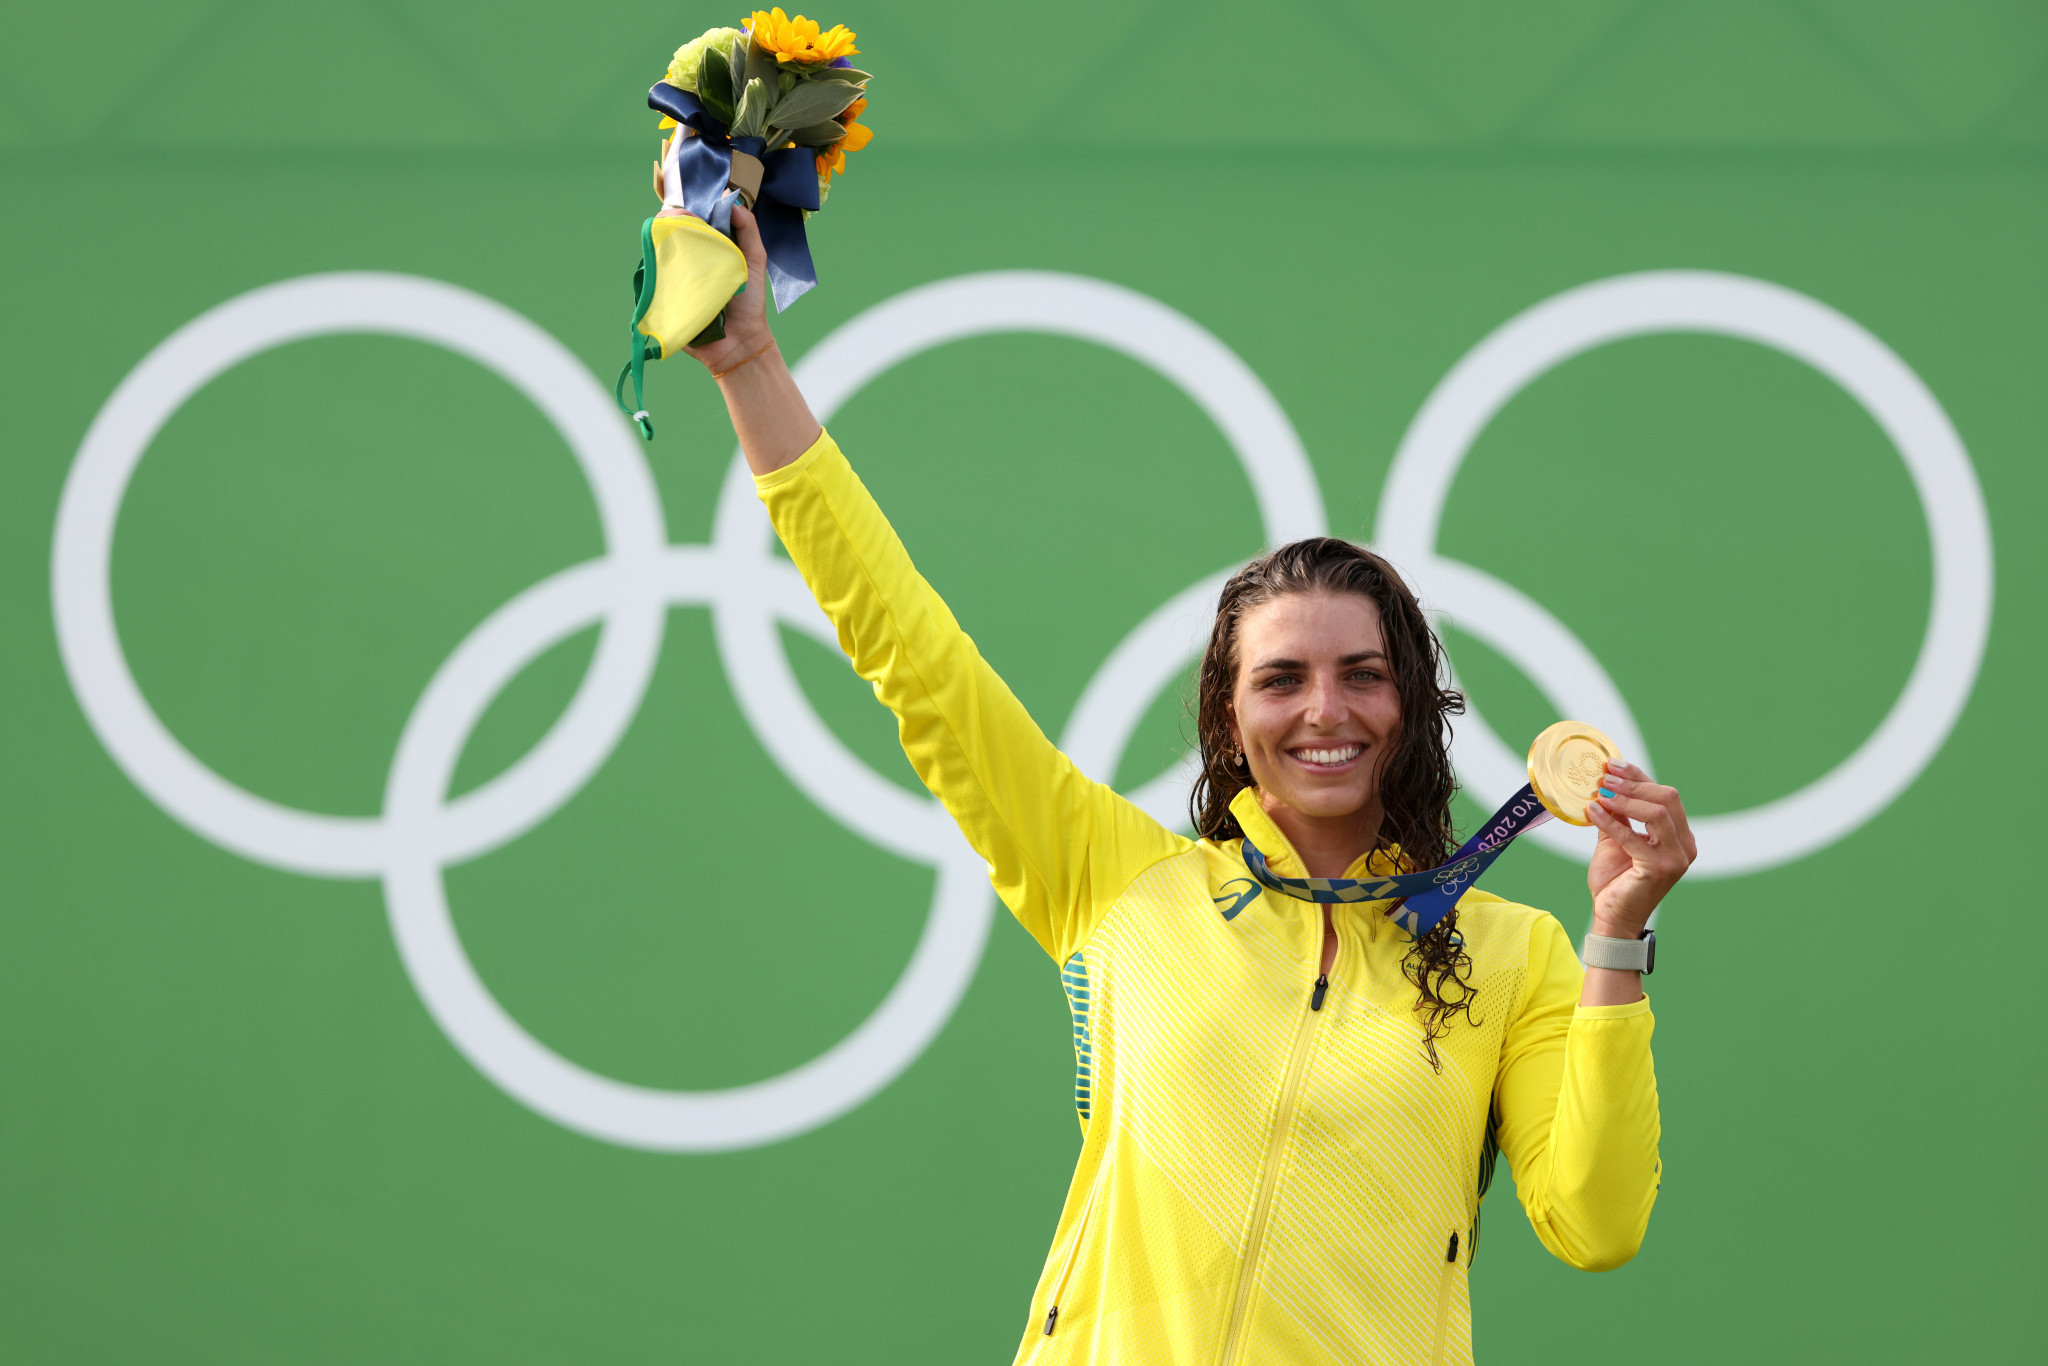 Jess Fox celebrates her gold medal on the podium ©Getty Images